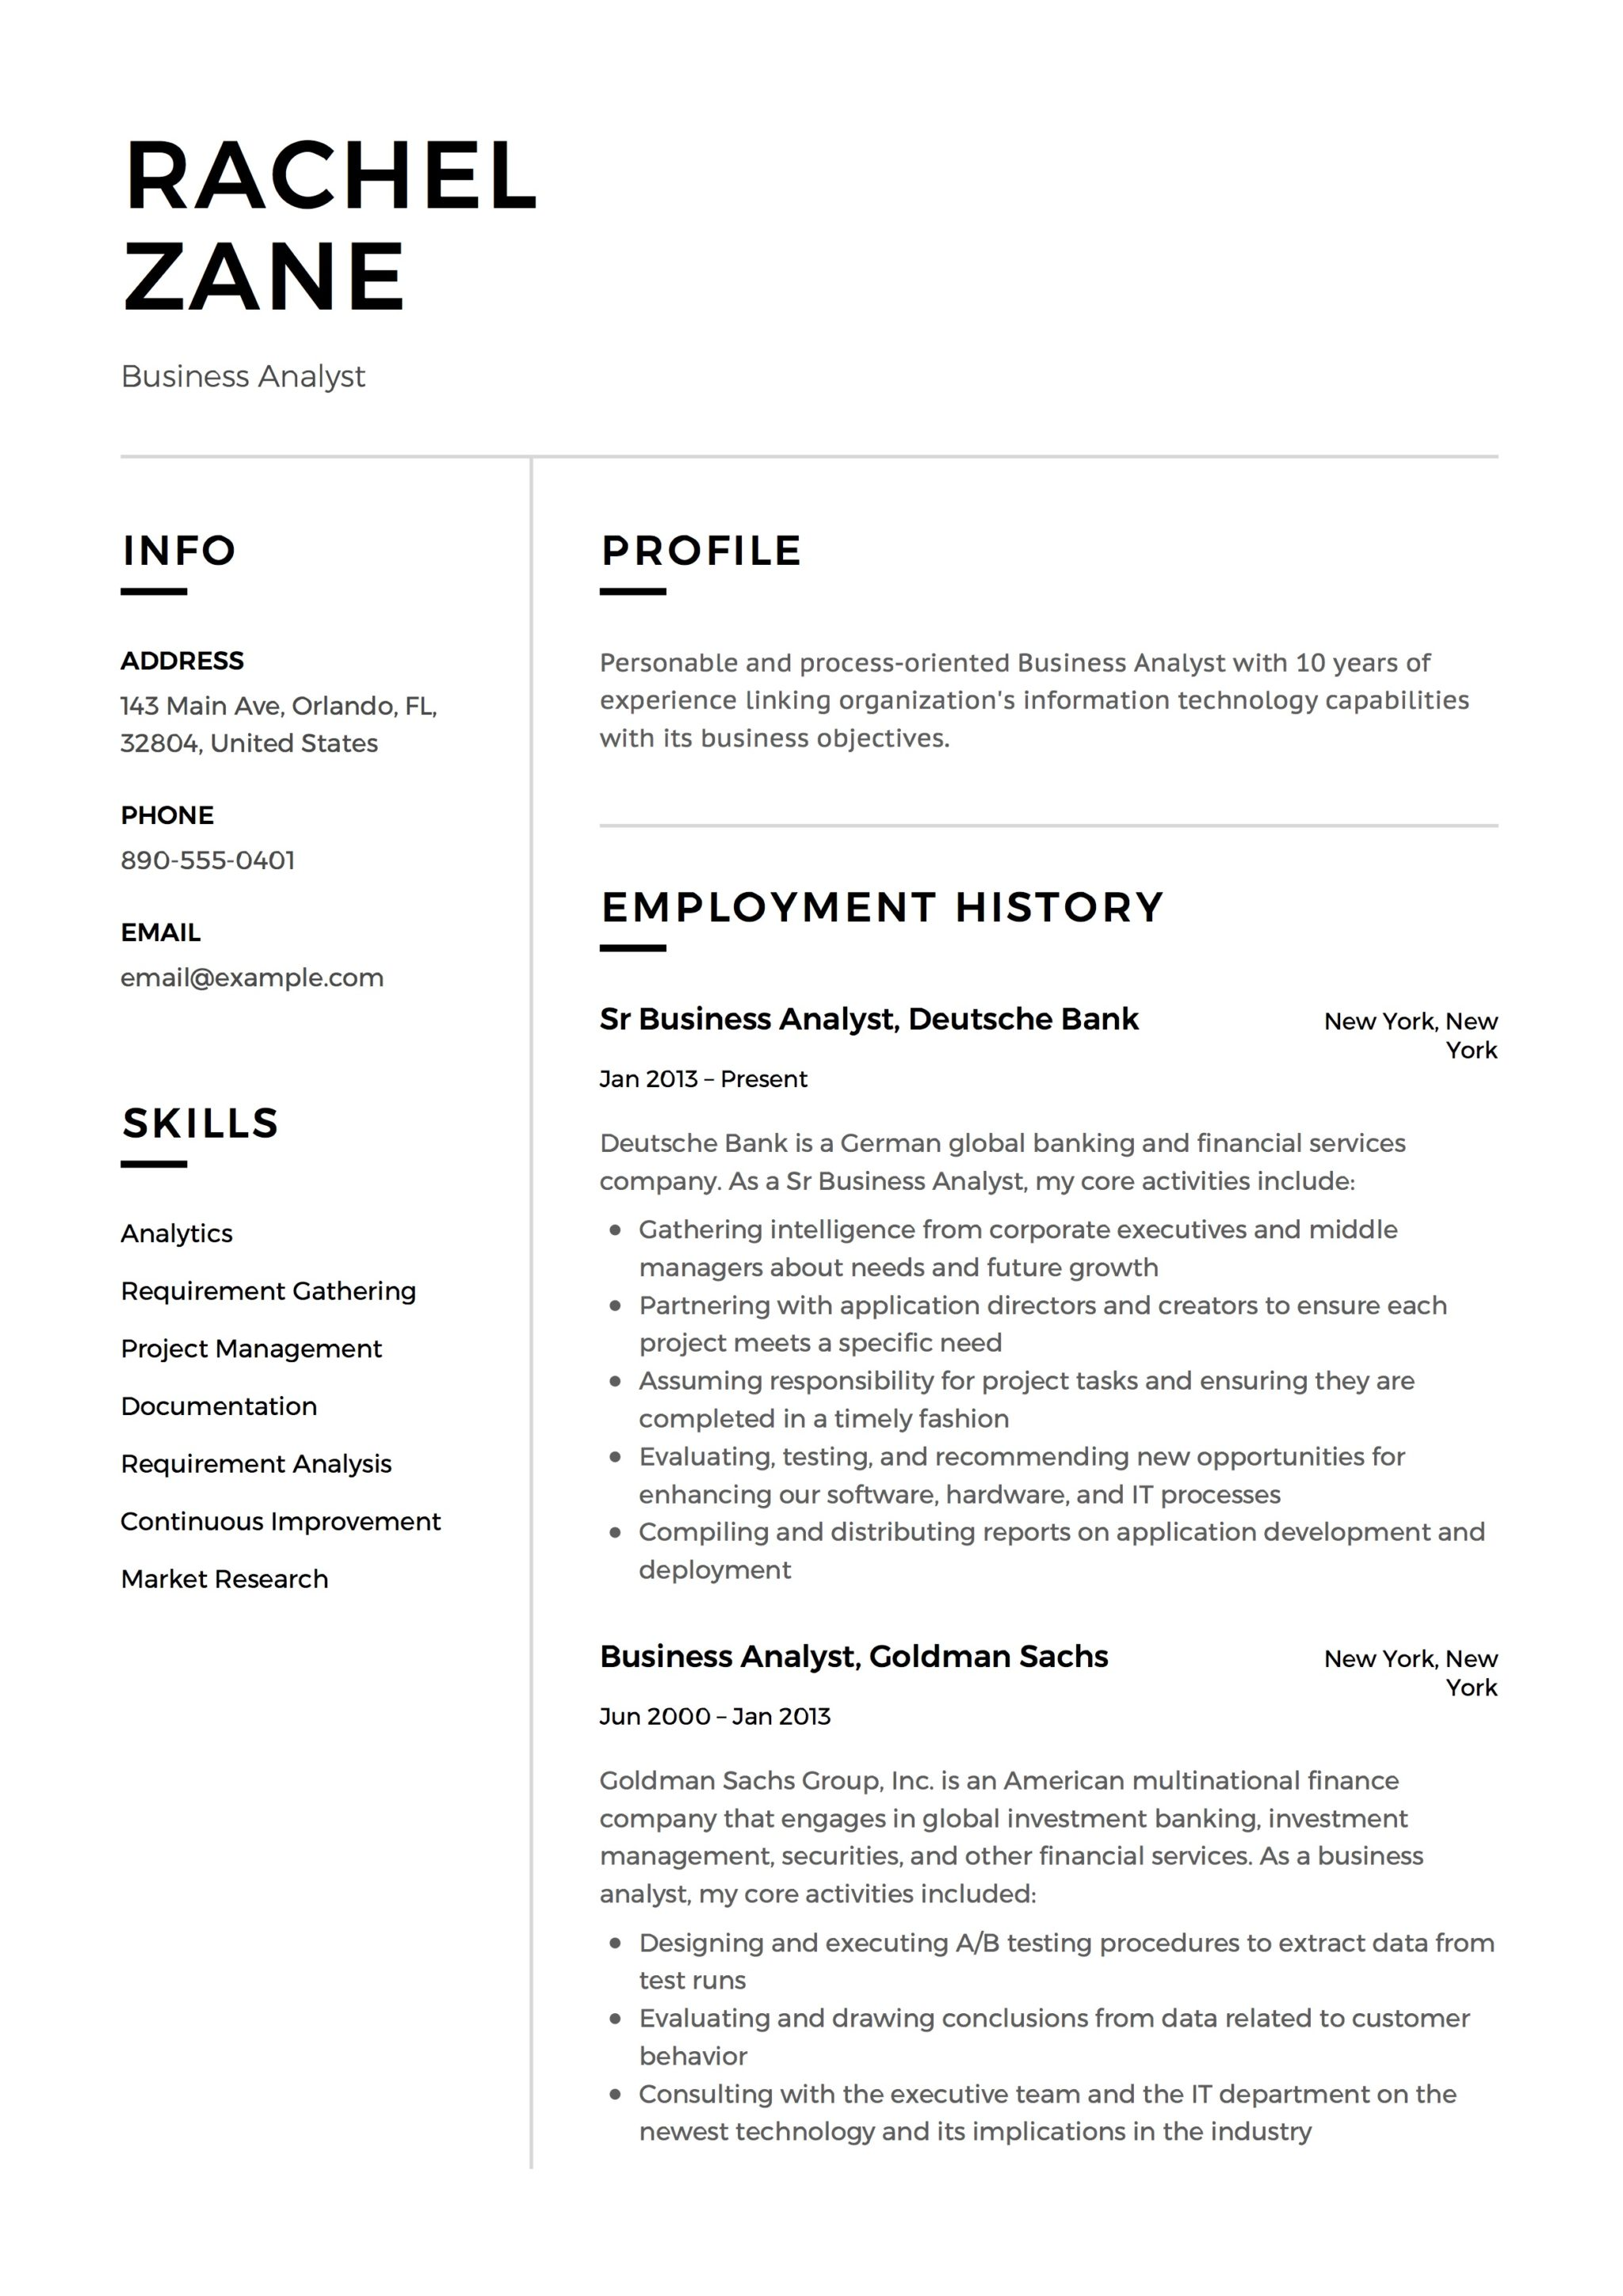 These Business Analyst Resume Samples Are Made With Resume.io (For $2,95).